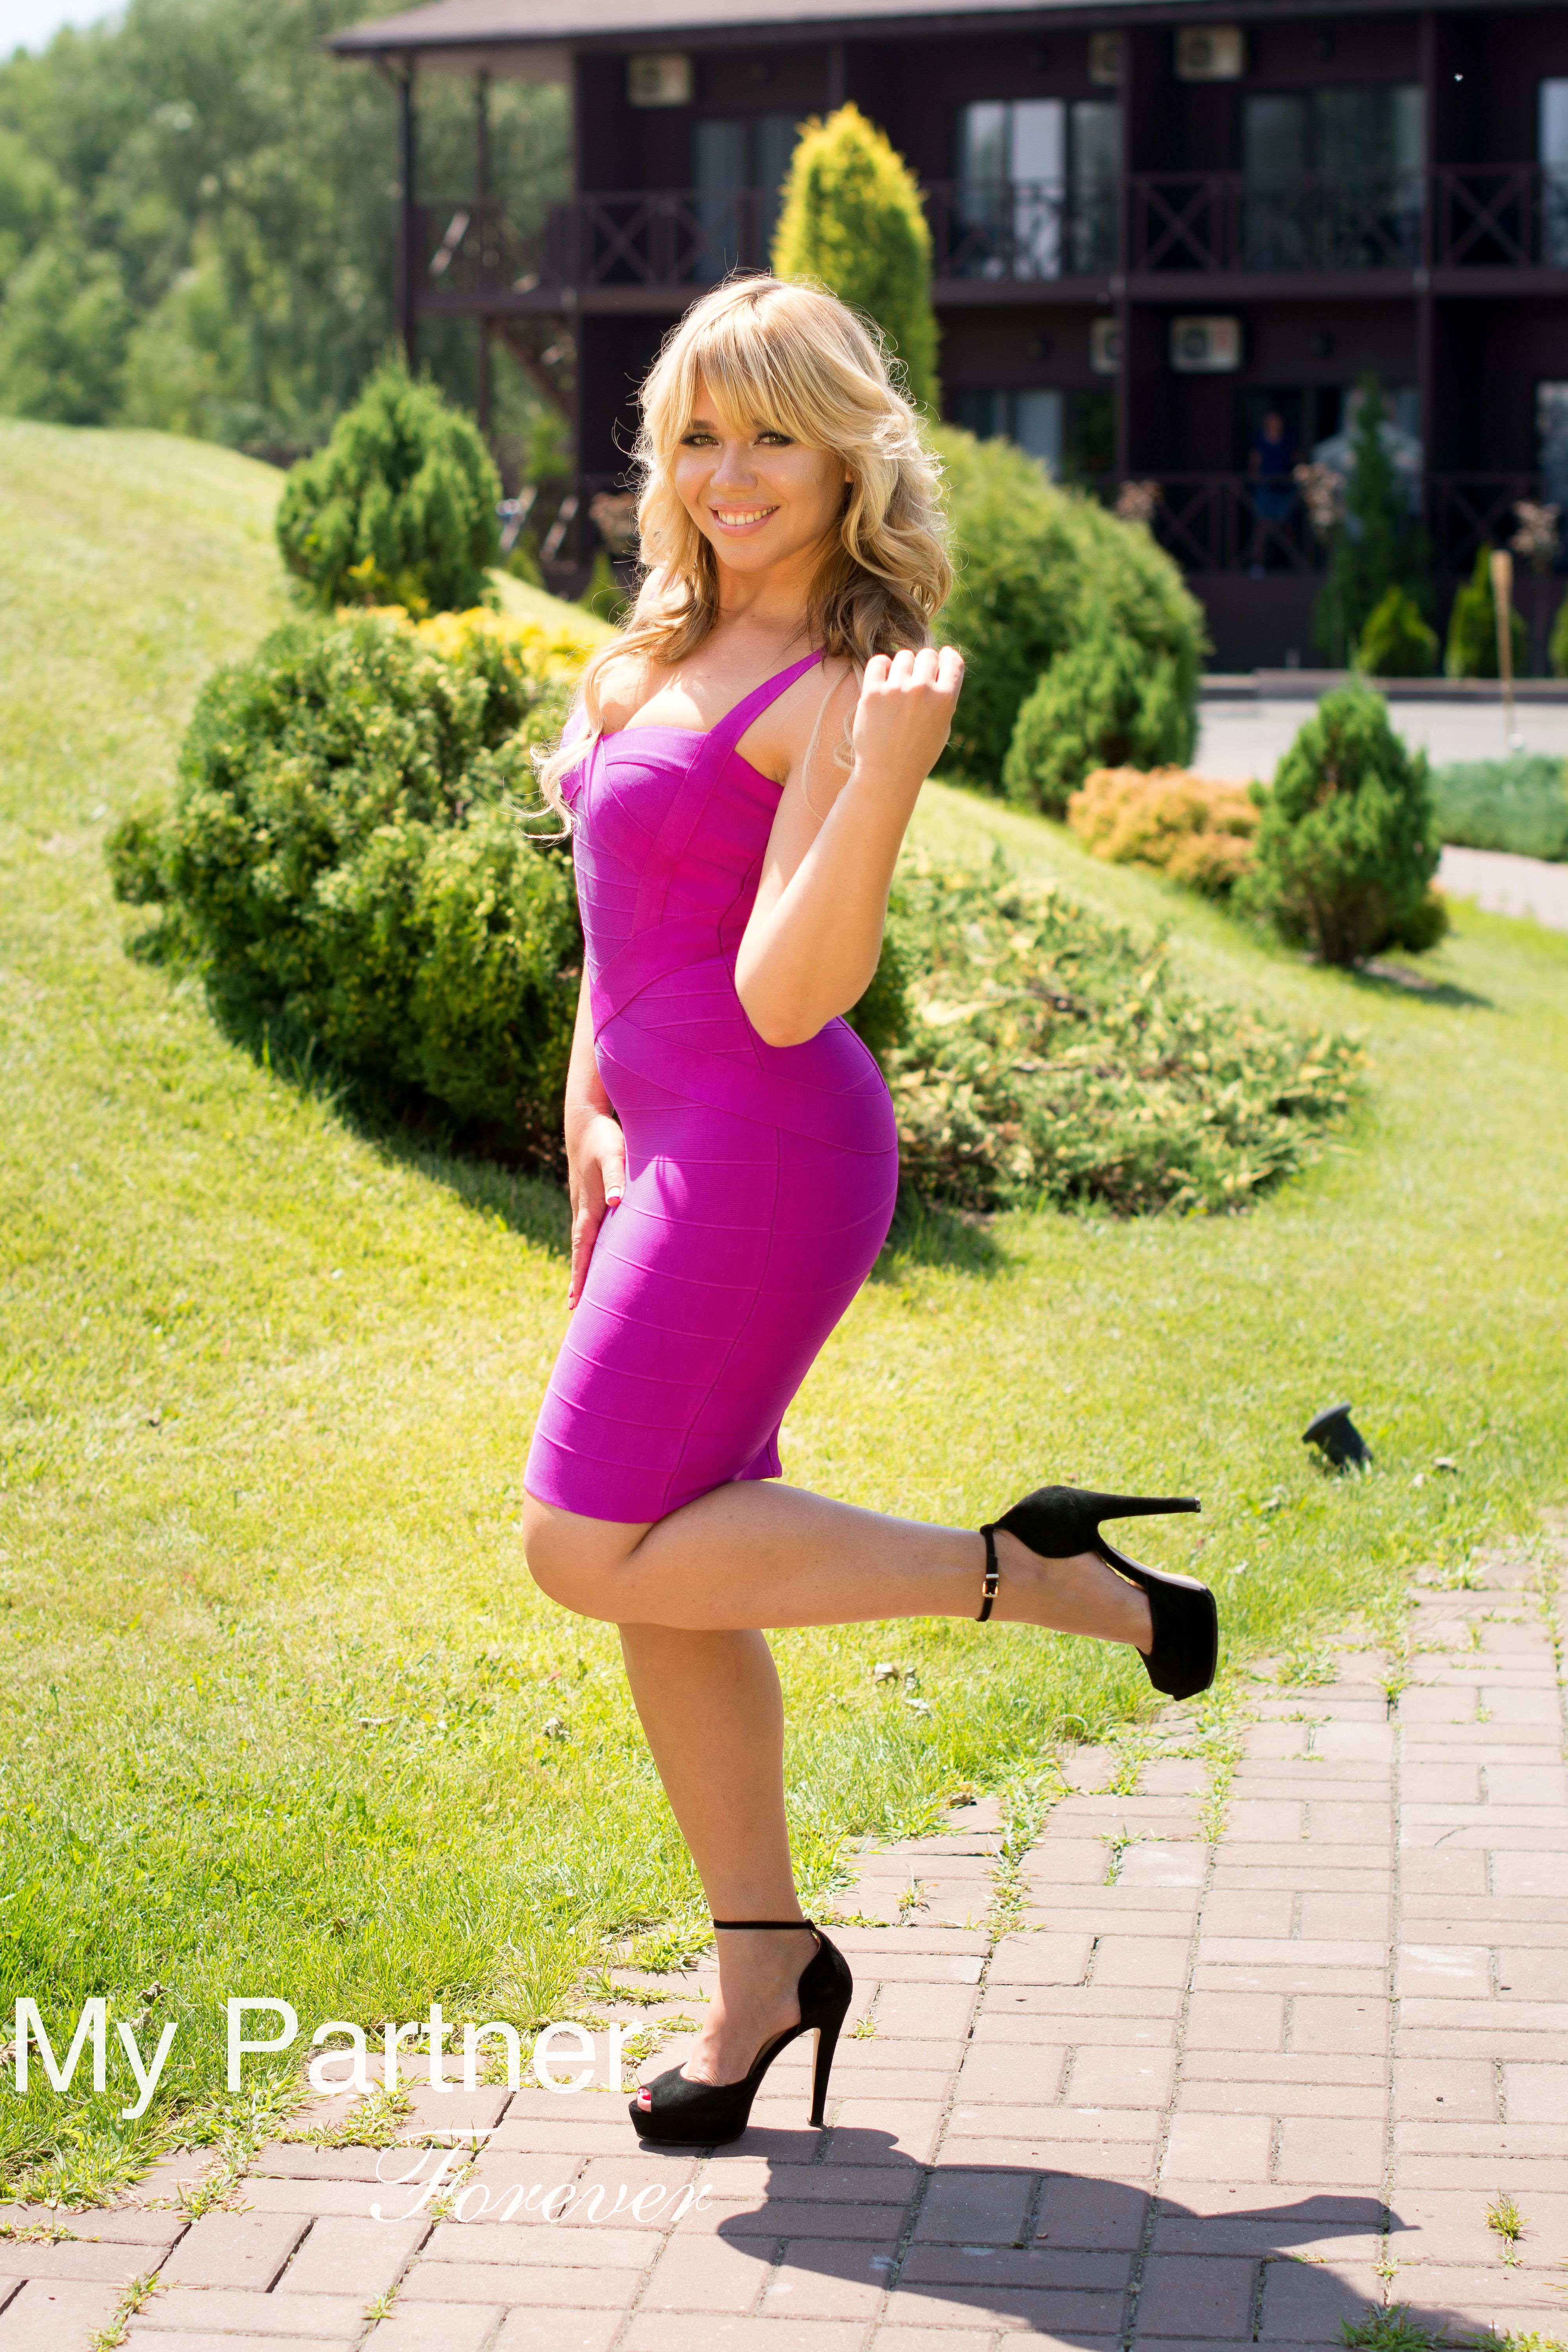 Beautiful Bride from Ukraine - Oksana from Dniepropetrovsk, Ukraine